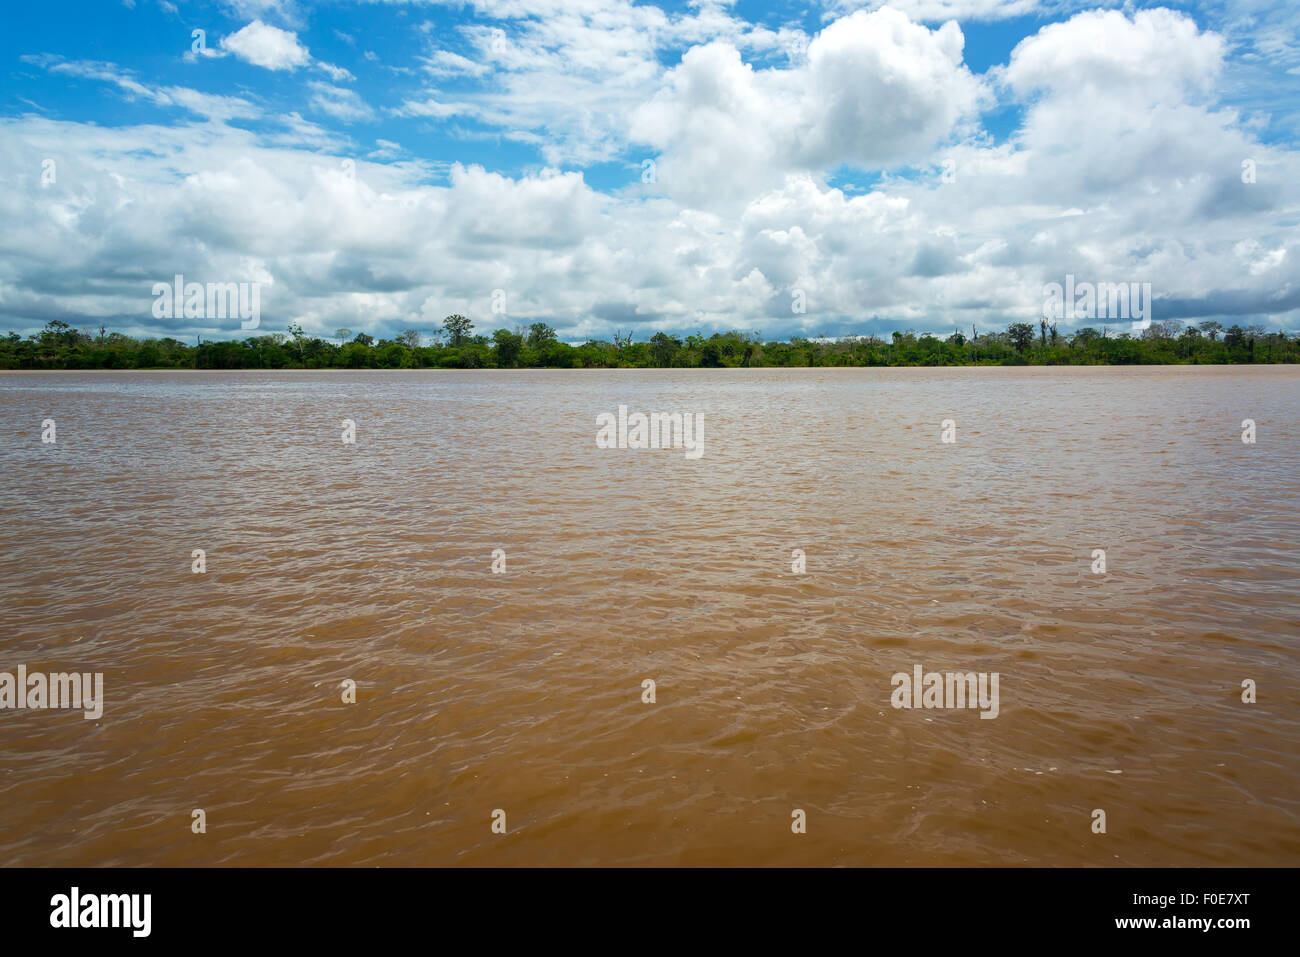 View of the wide muddy Amazon River as it slowly passes through Peru - Stock Image